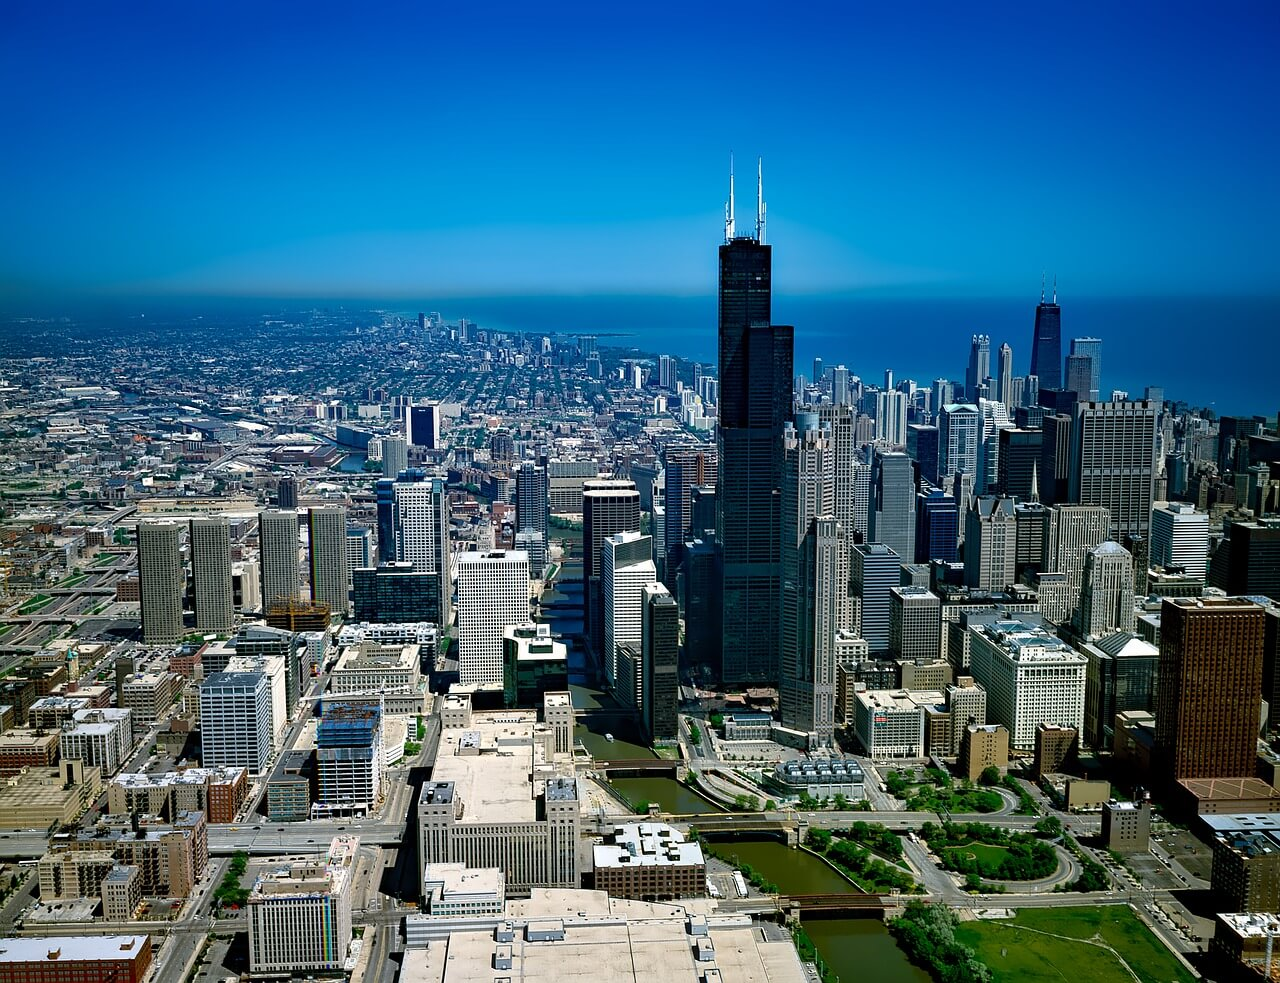 Chicago Skyline including Willis tower